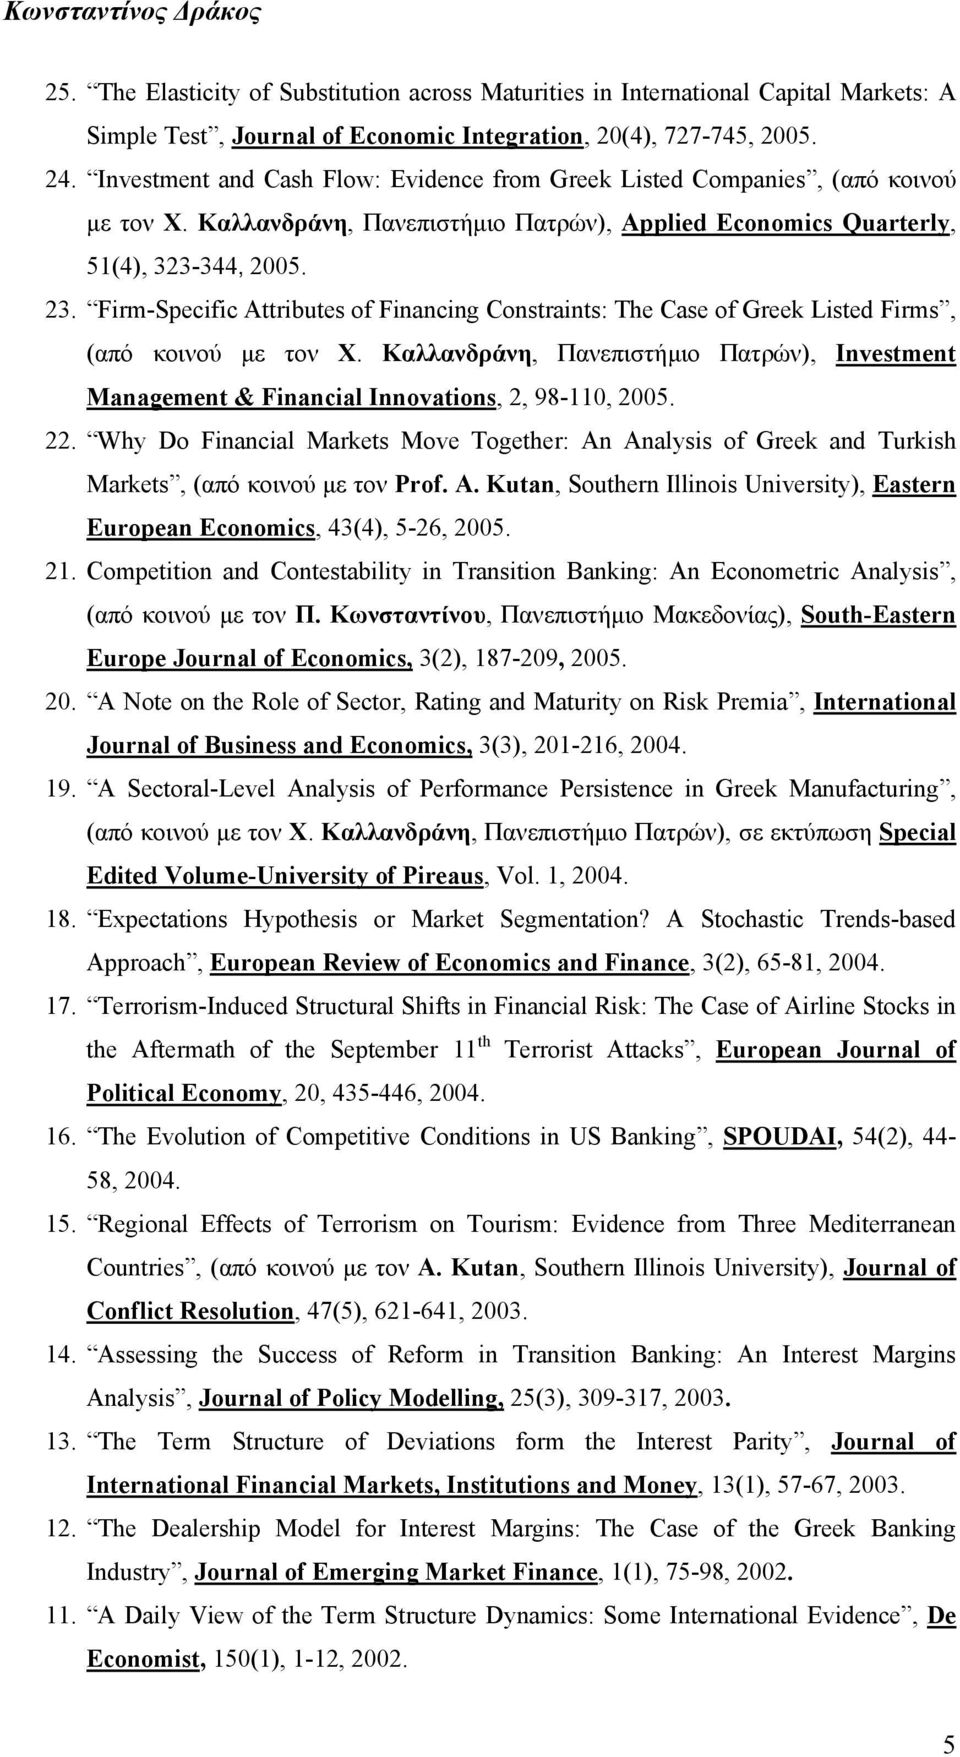 Firm-Specific Attributes of Financing Constraints: The Case of Greek Listed Firms, (από κοινού µε τον Χ.